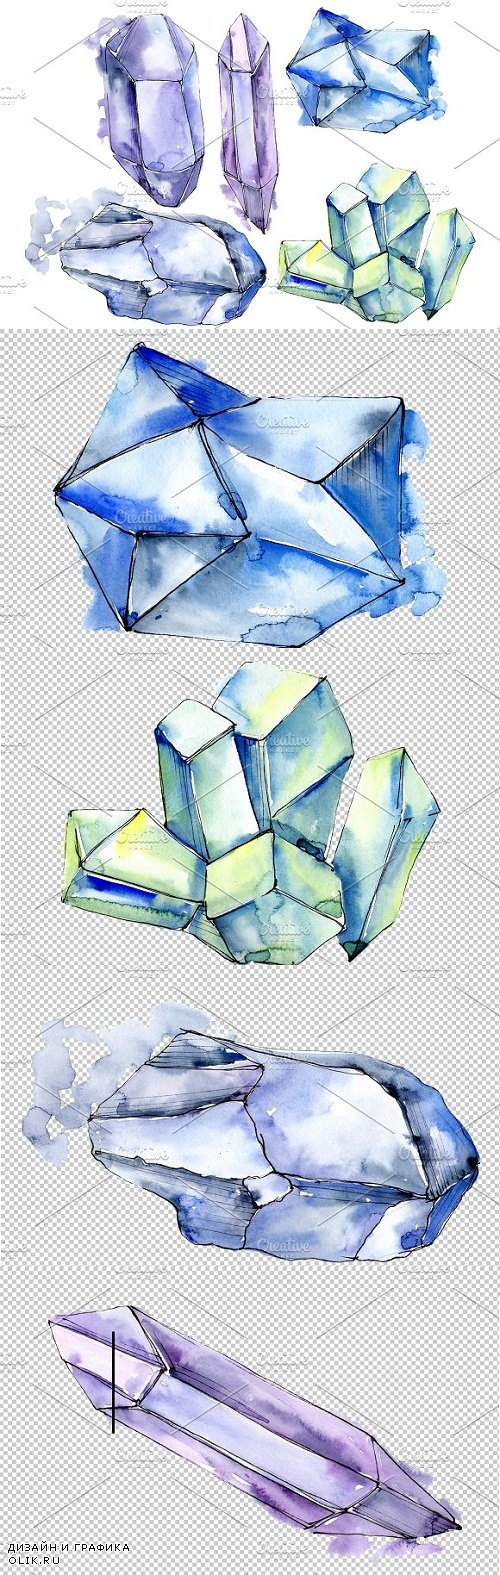 Crystals blue Watercolor png - 3533303